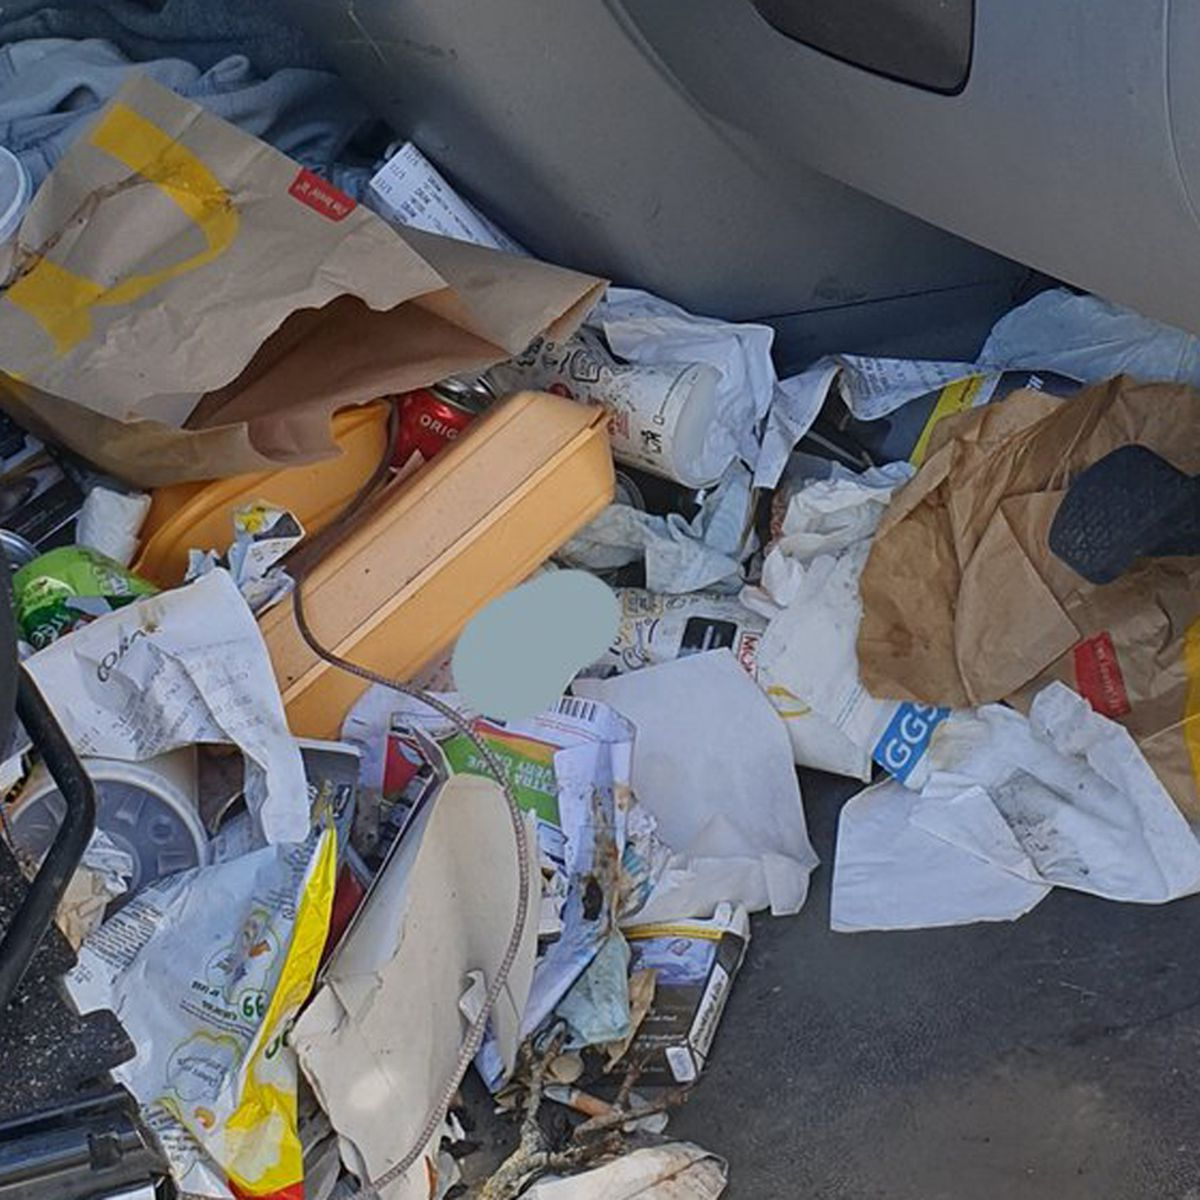 Police Fine Driver For Insanely Messy Car Interior 9honey